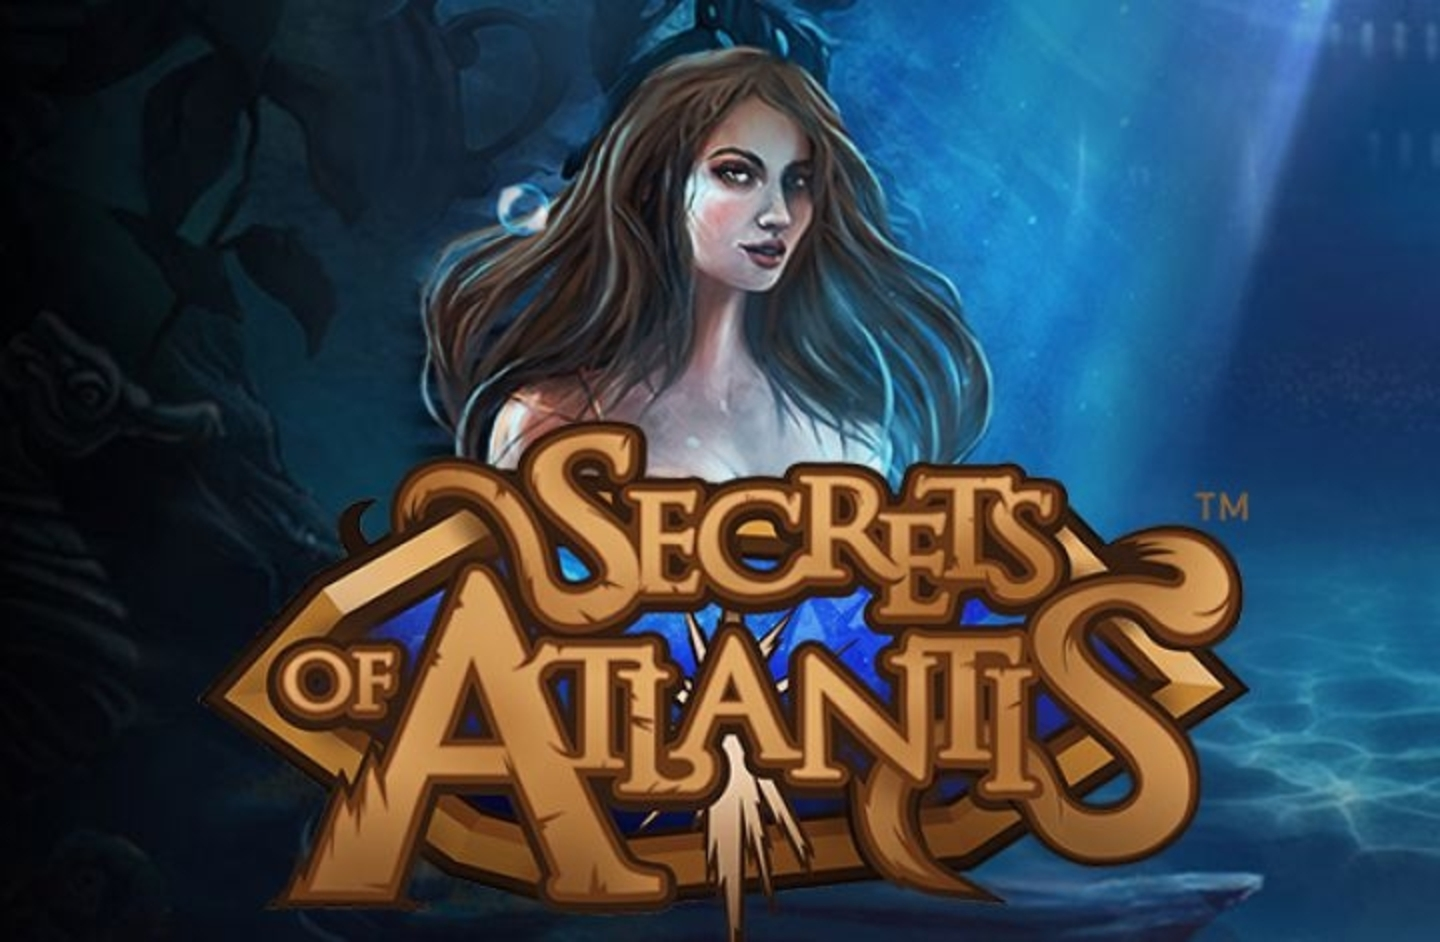 Se Secrets of Atlantis Online Slot Demo Game, NetEnt